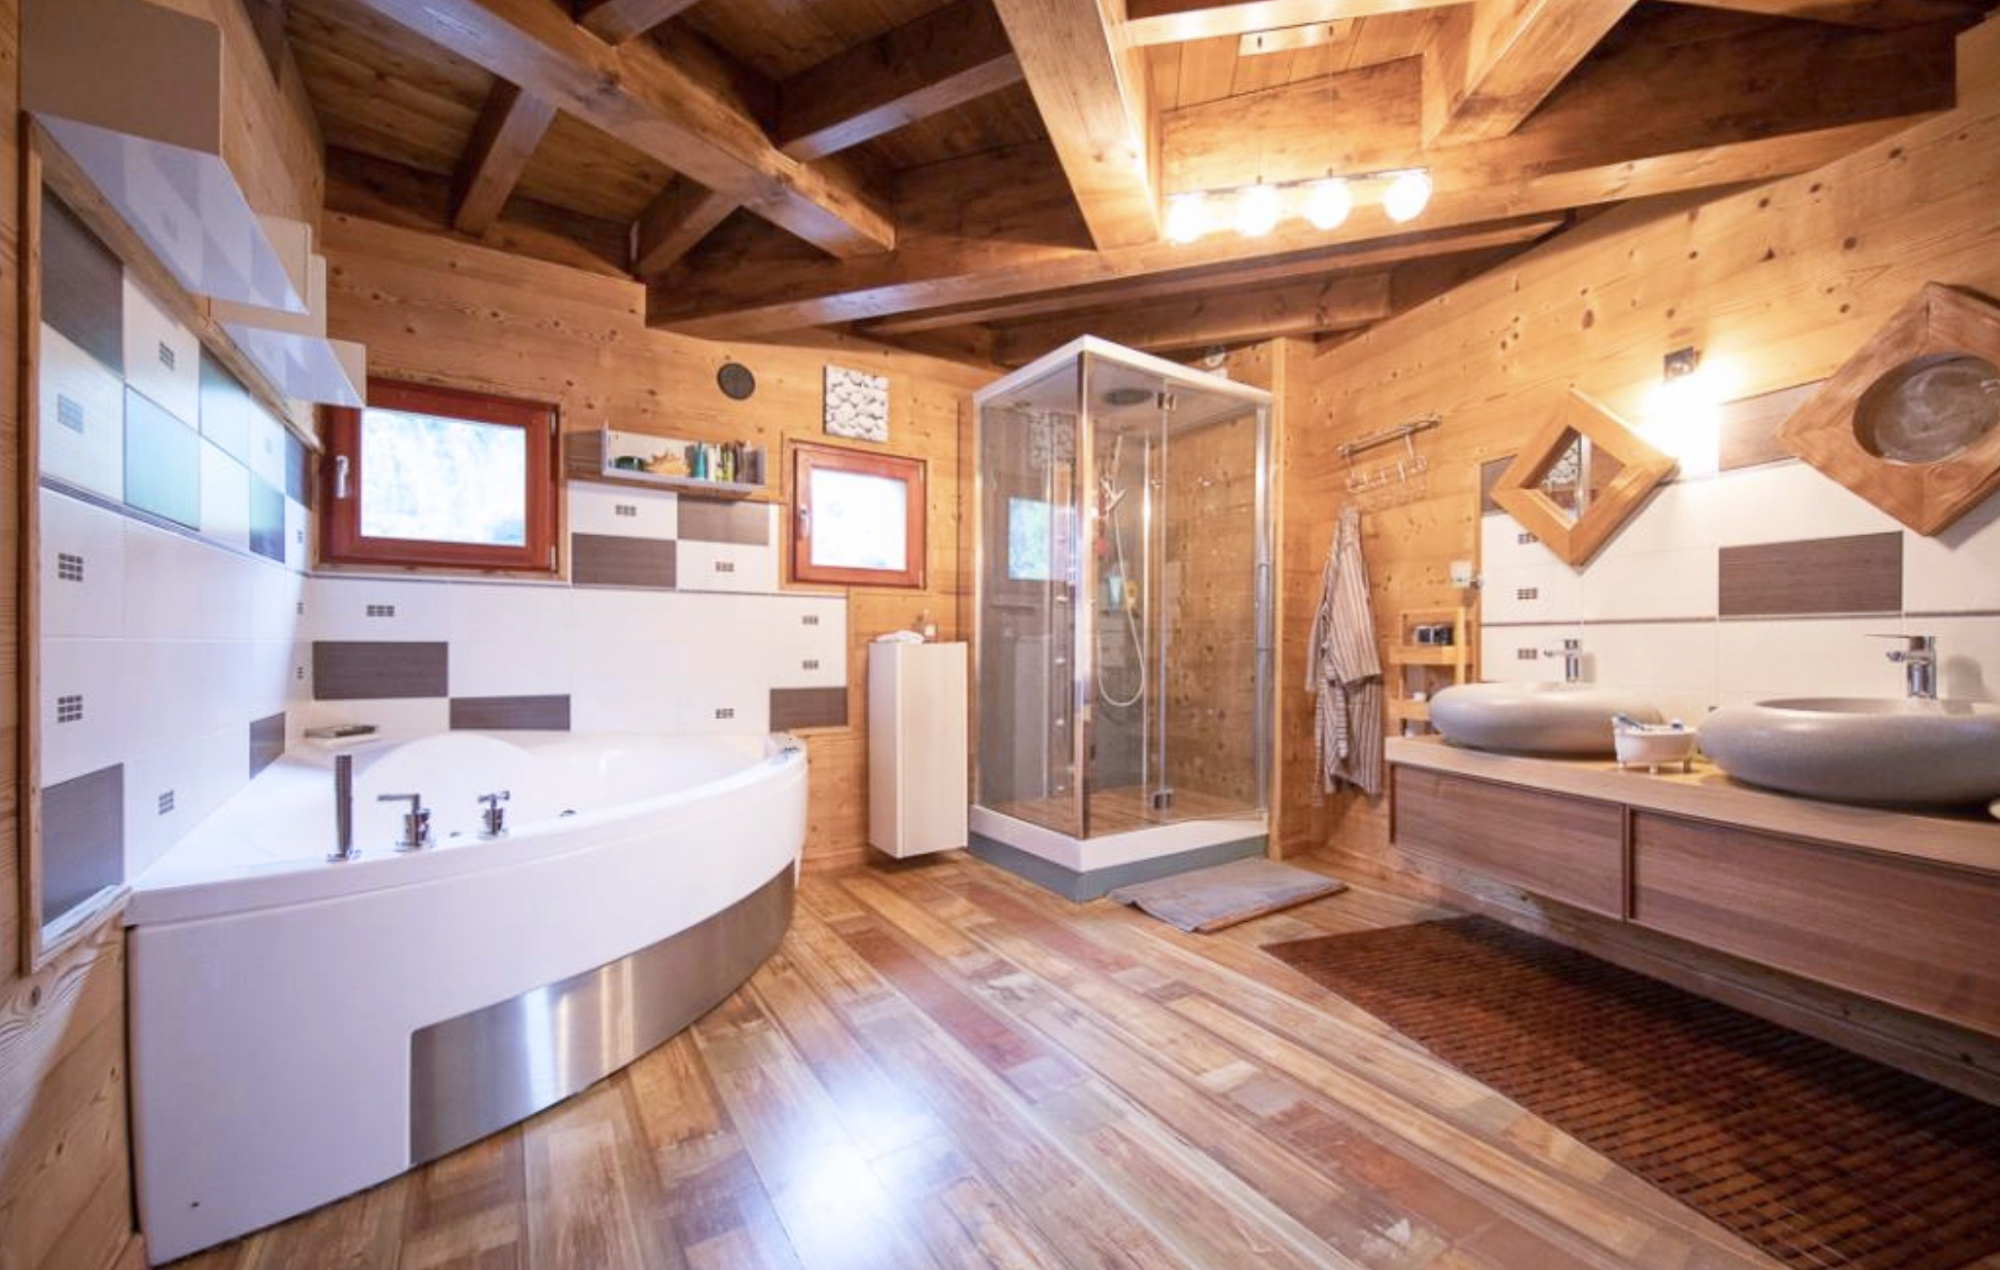 House for sale in the French Alps